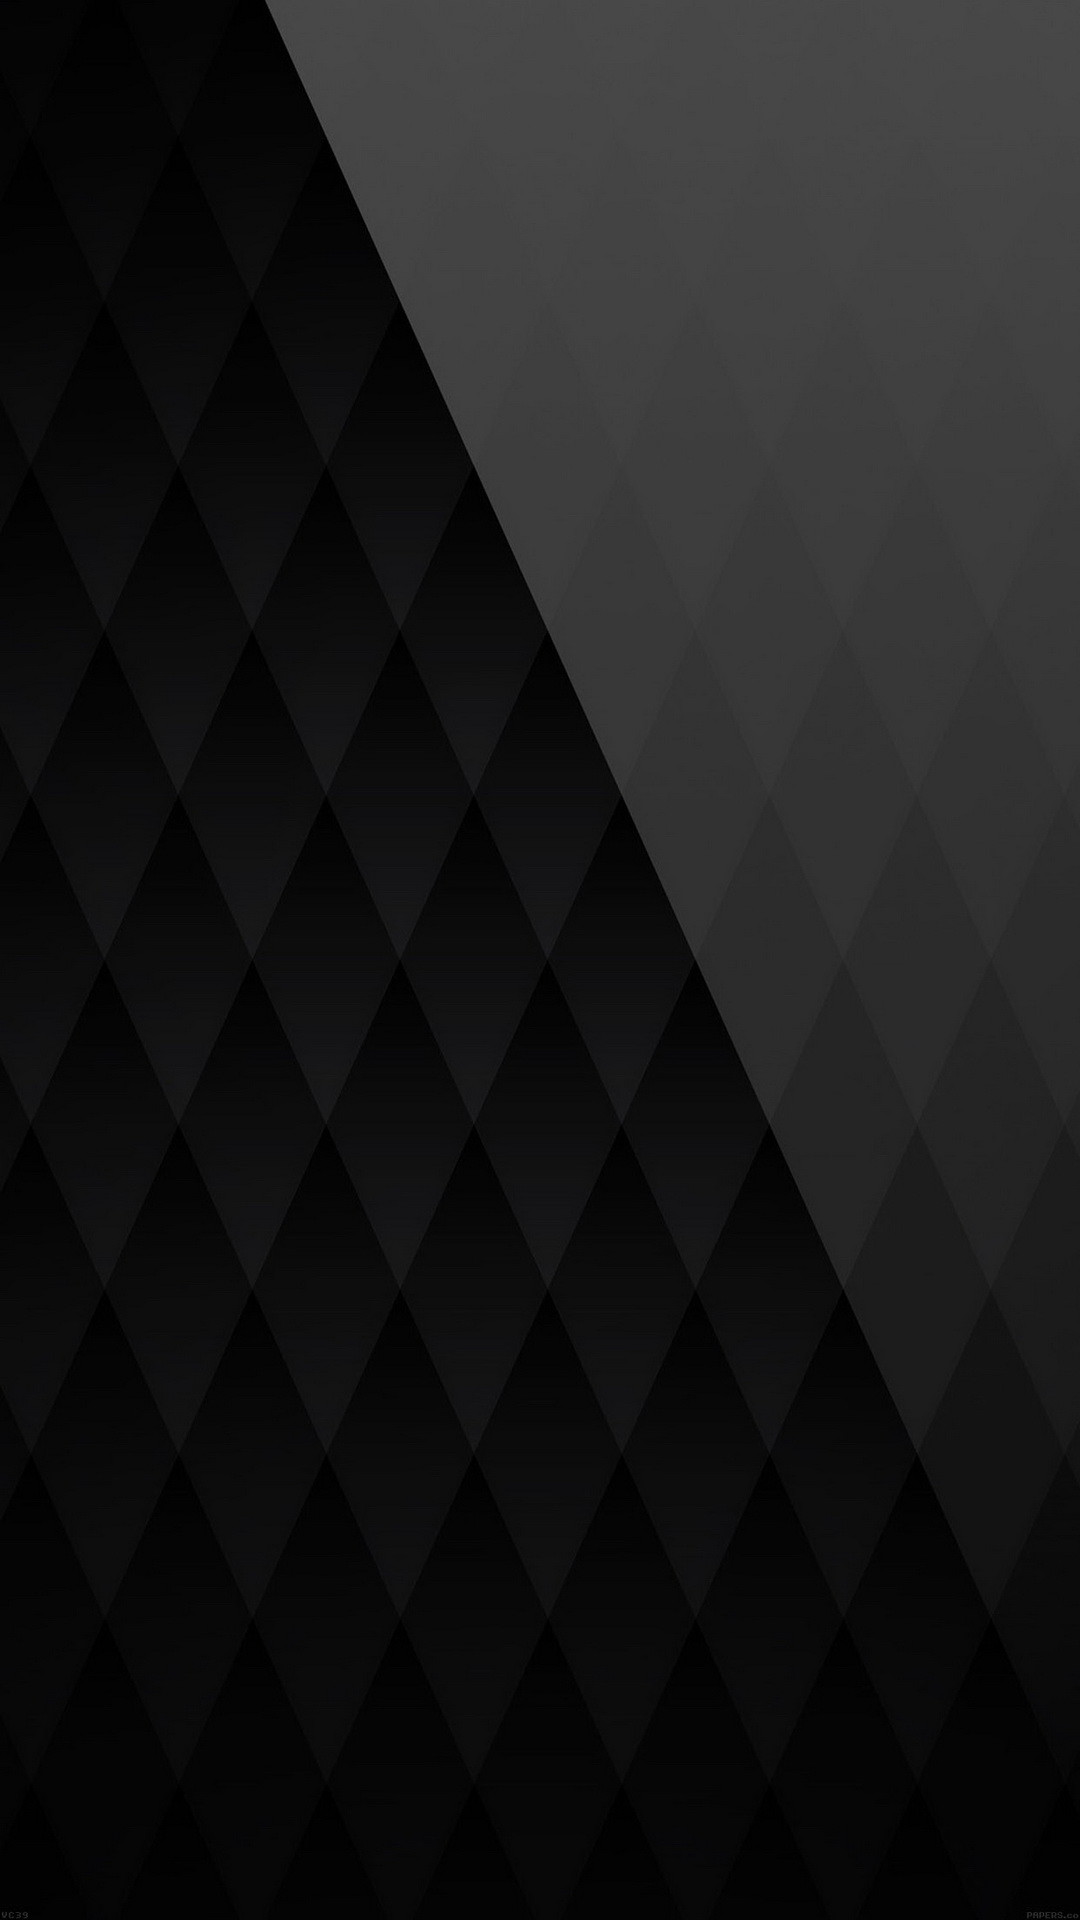 Black Diamond Pattern Angle Android Wallpaper …